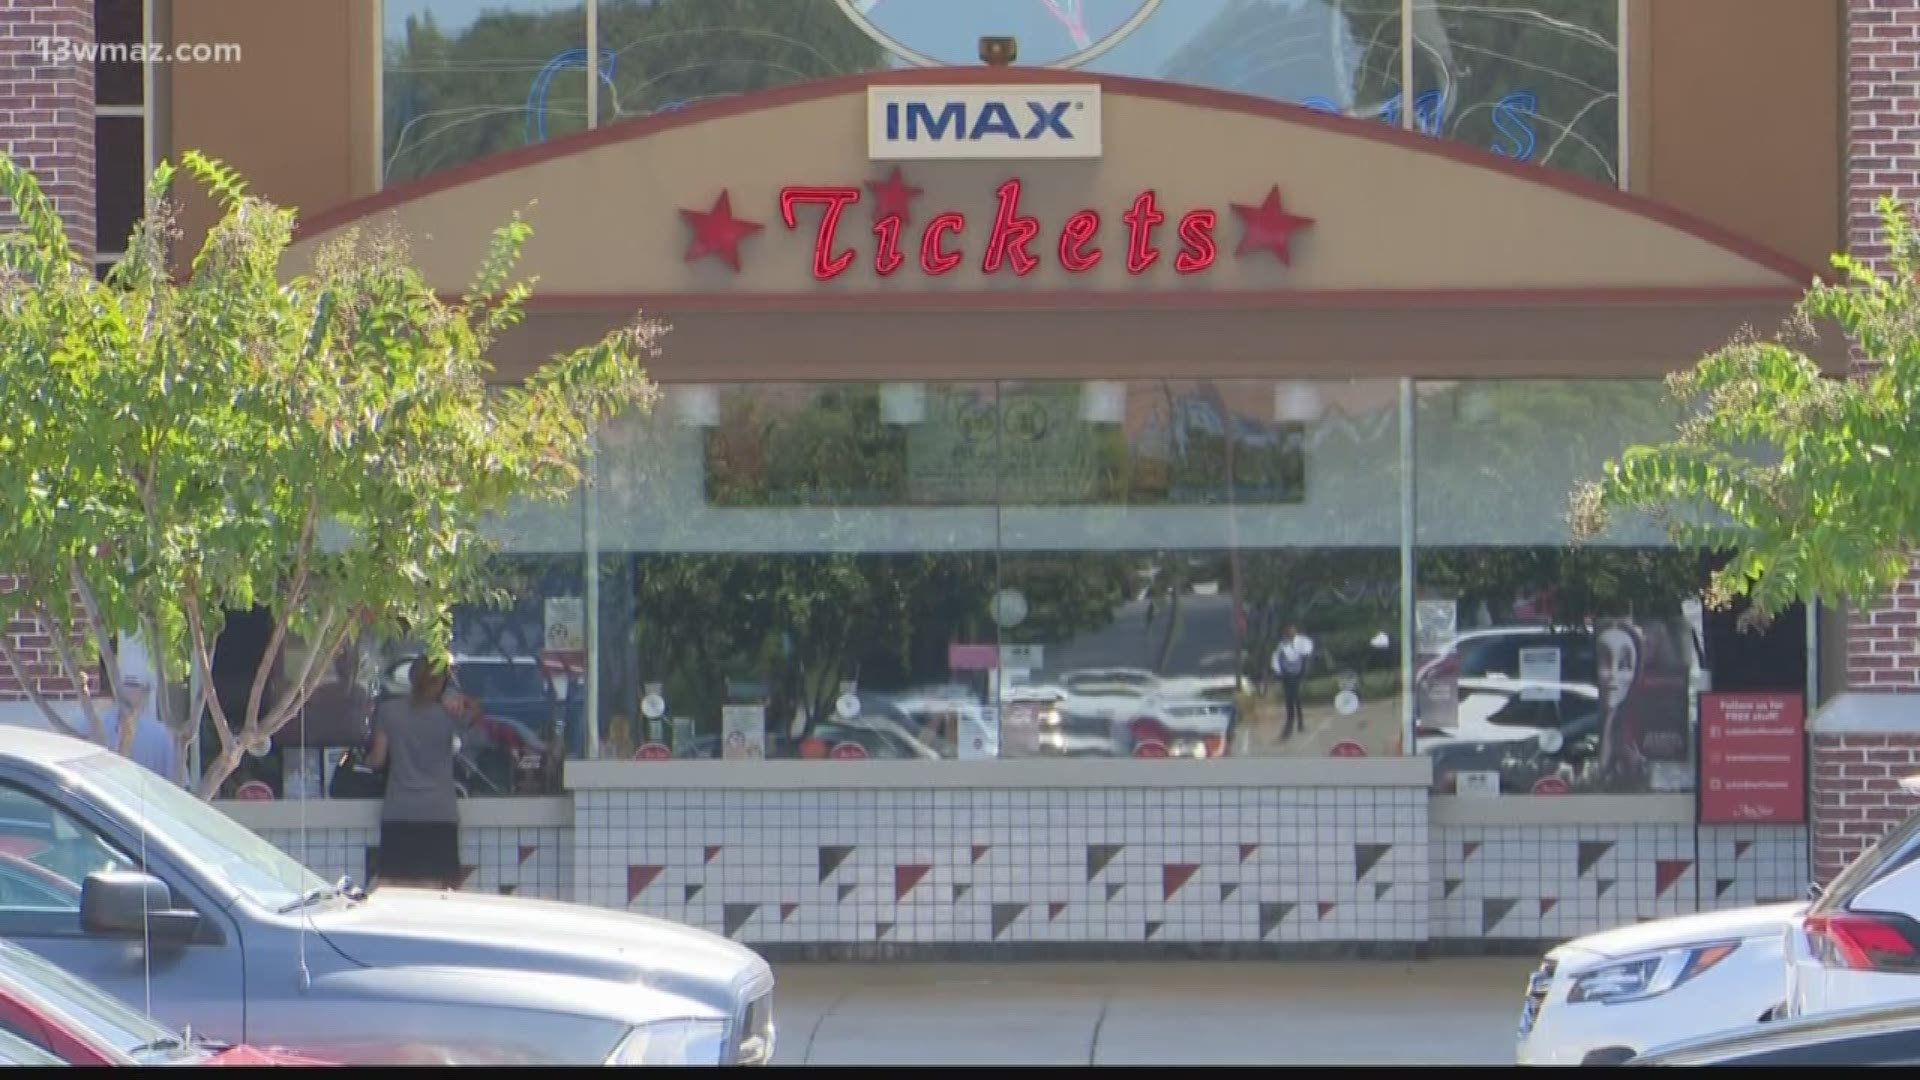 Verify Was There A Shooting At The Amstar 16 Macon Movie Theater 13wmaz Com Ticket prices are subject to change. verify was there a shooting at the macon amstar theater